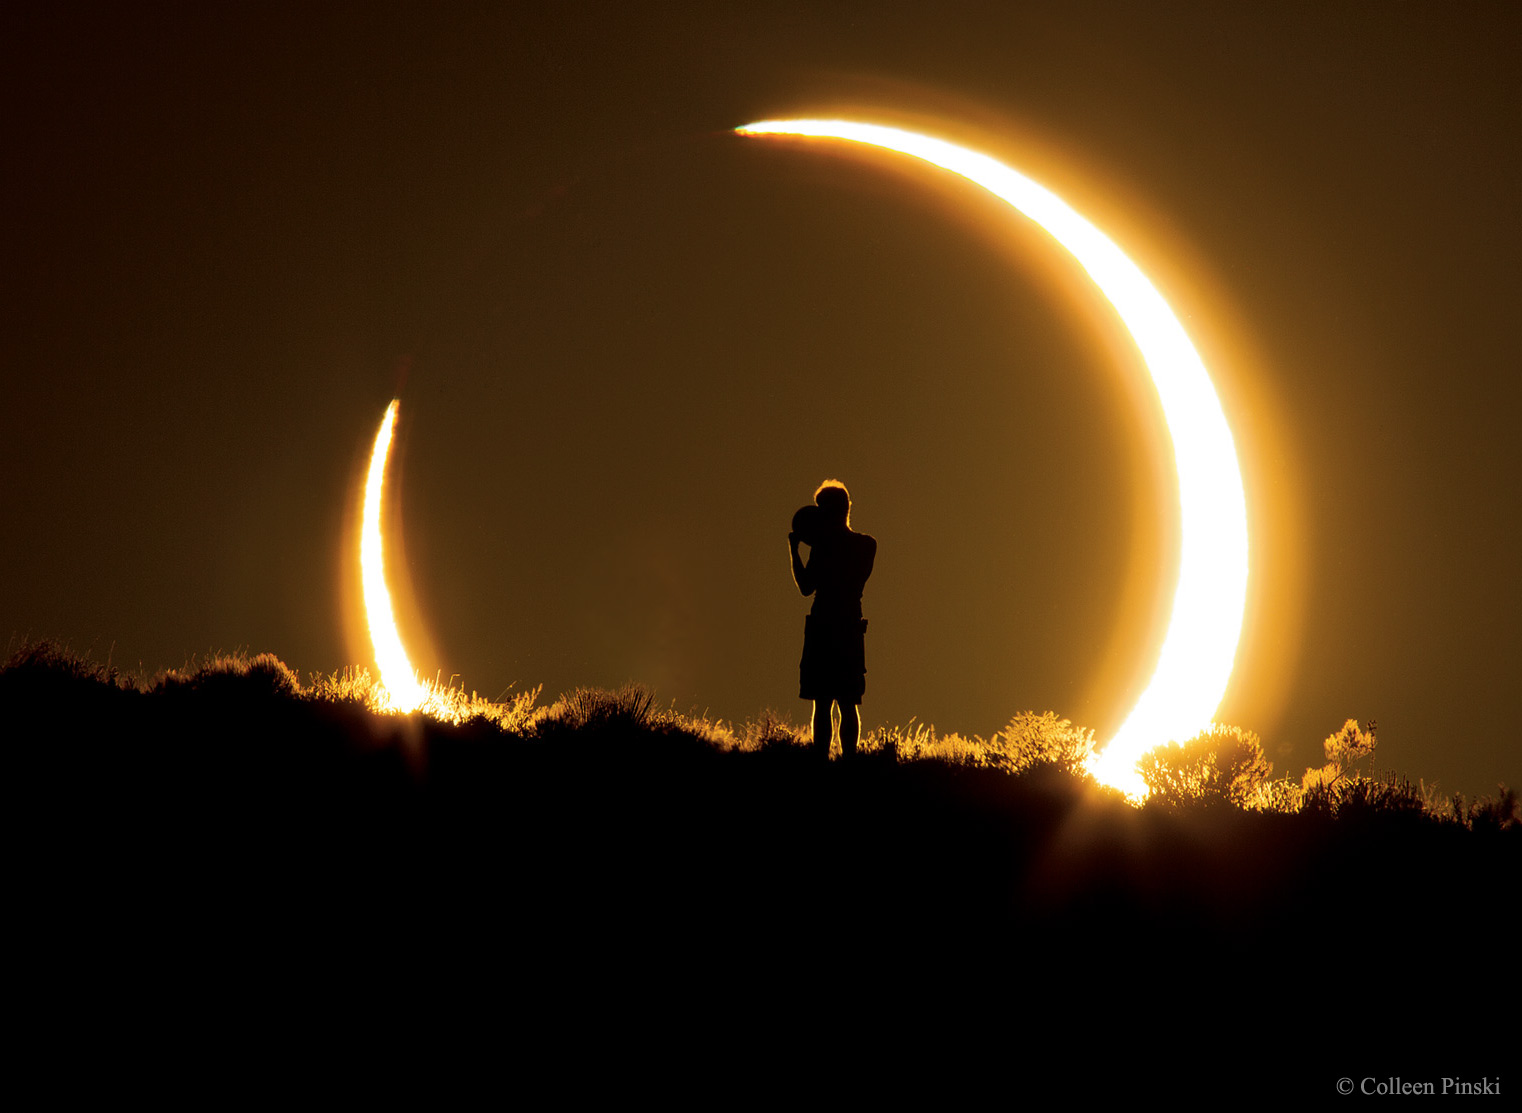 2016 August 31 - Annular Solar Eclipse over New Mexico